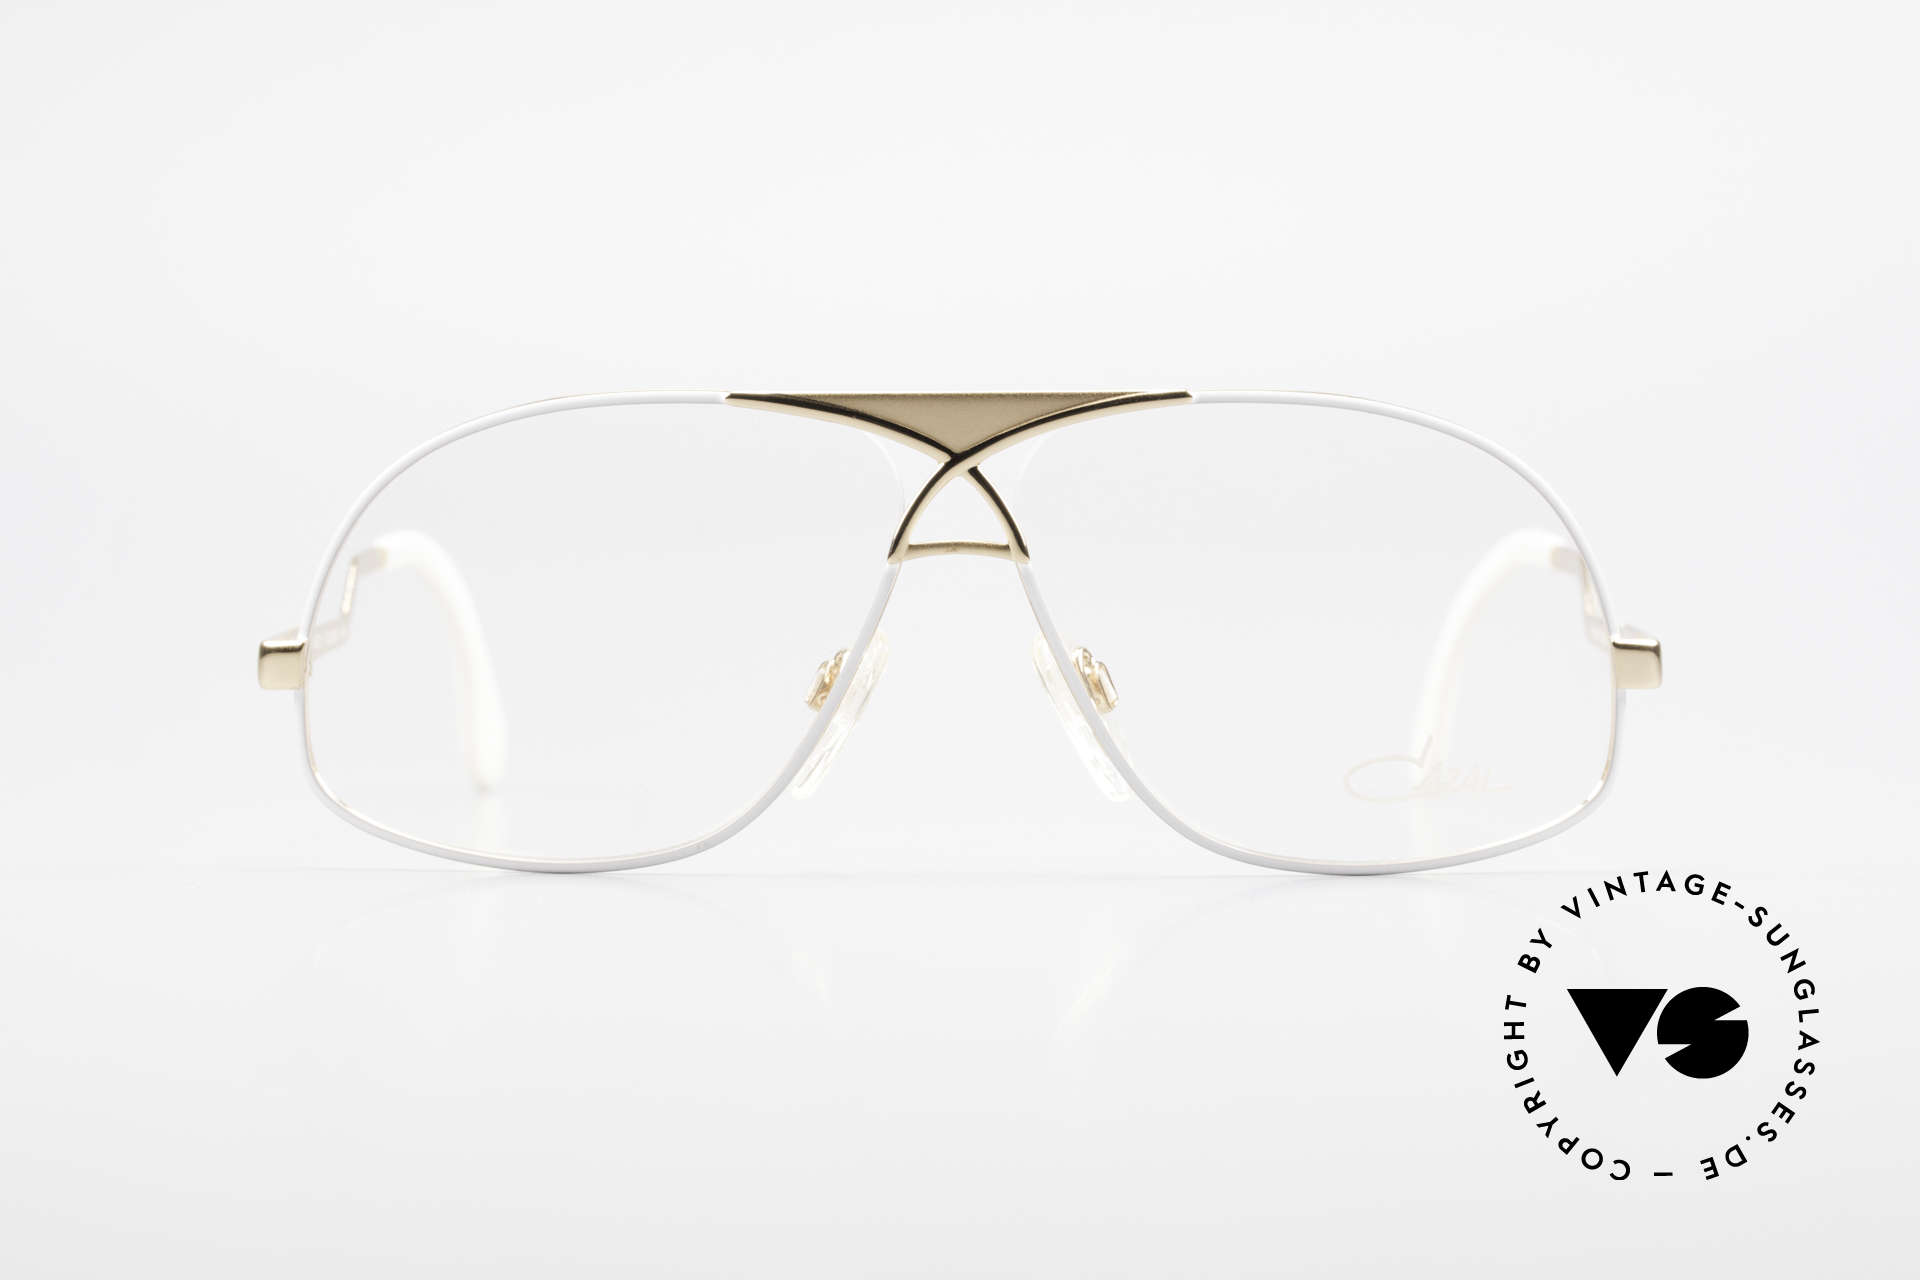 Cazal 737 80's Vintage Men's Eyeglasses, aviator style interpreted by CAri ZALloni (CAZAL), Made for Men